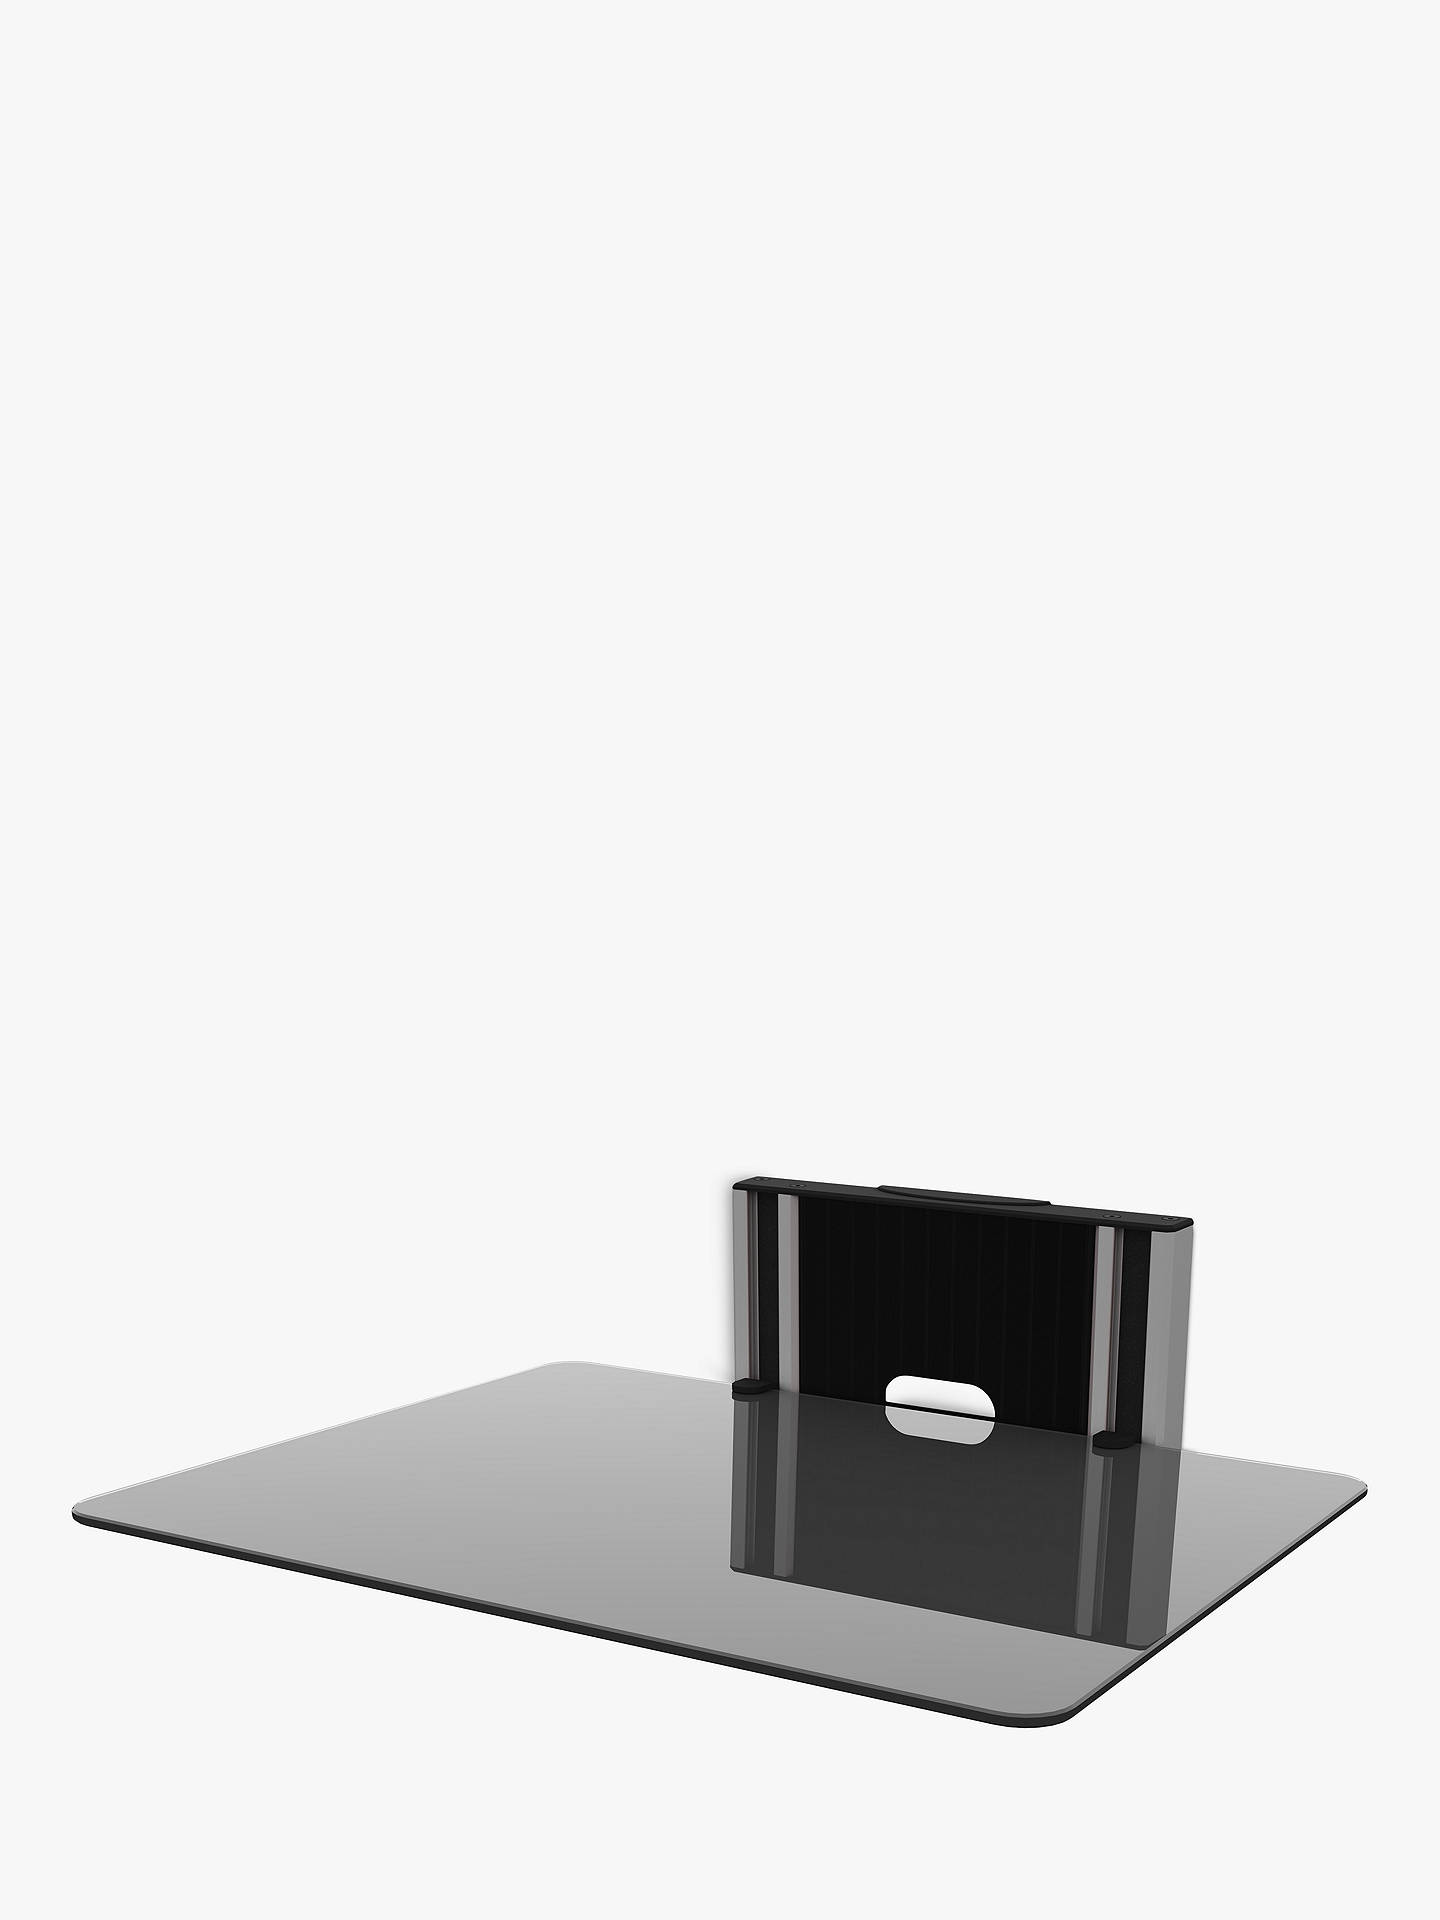 BuyAVF JMS1100 Accessory Shelf Online at johnlewis.com